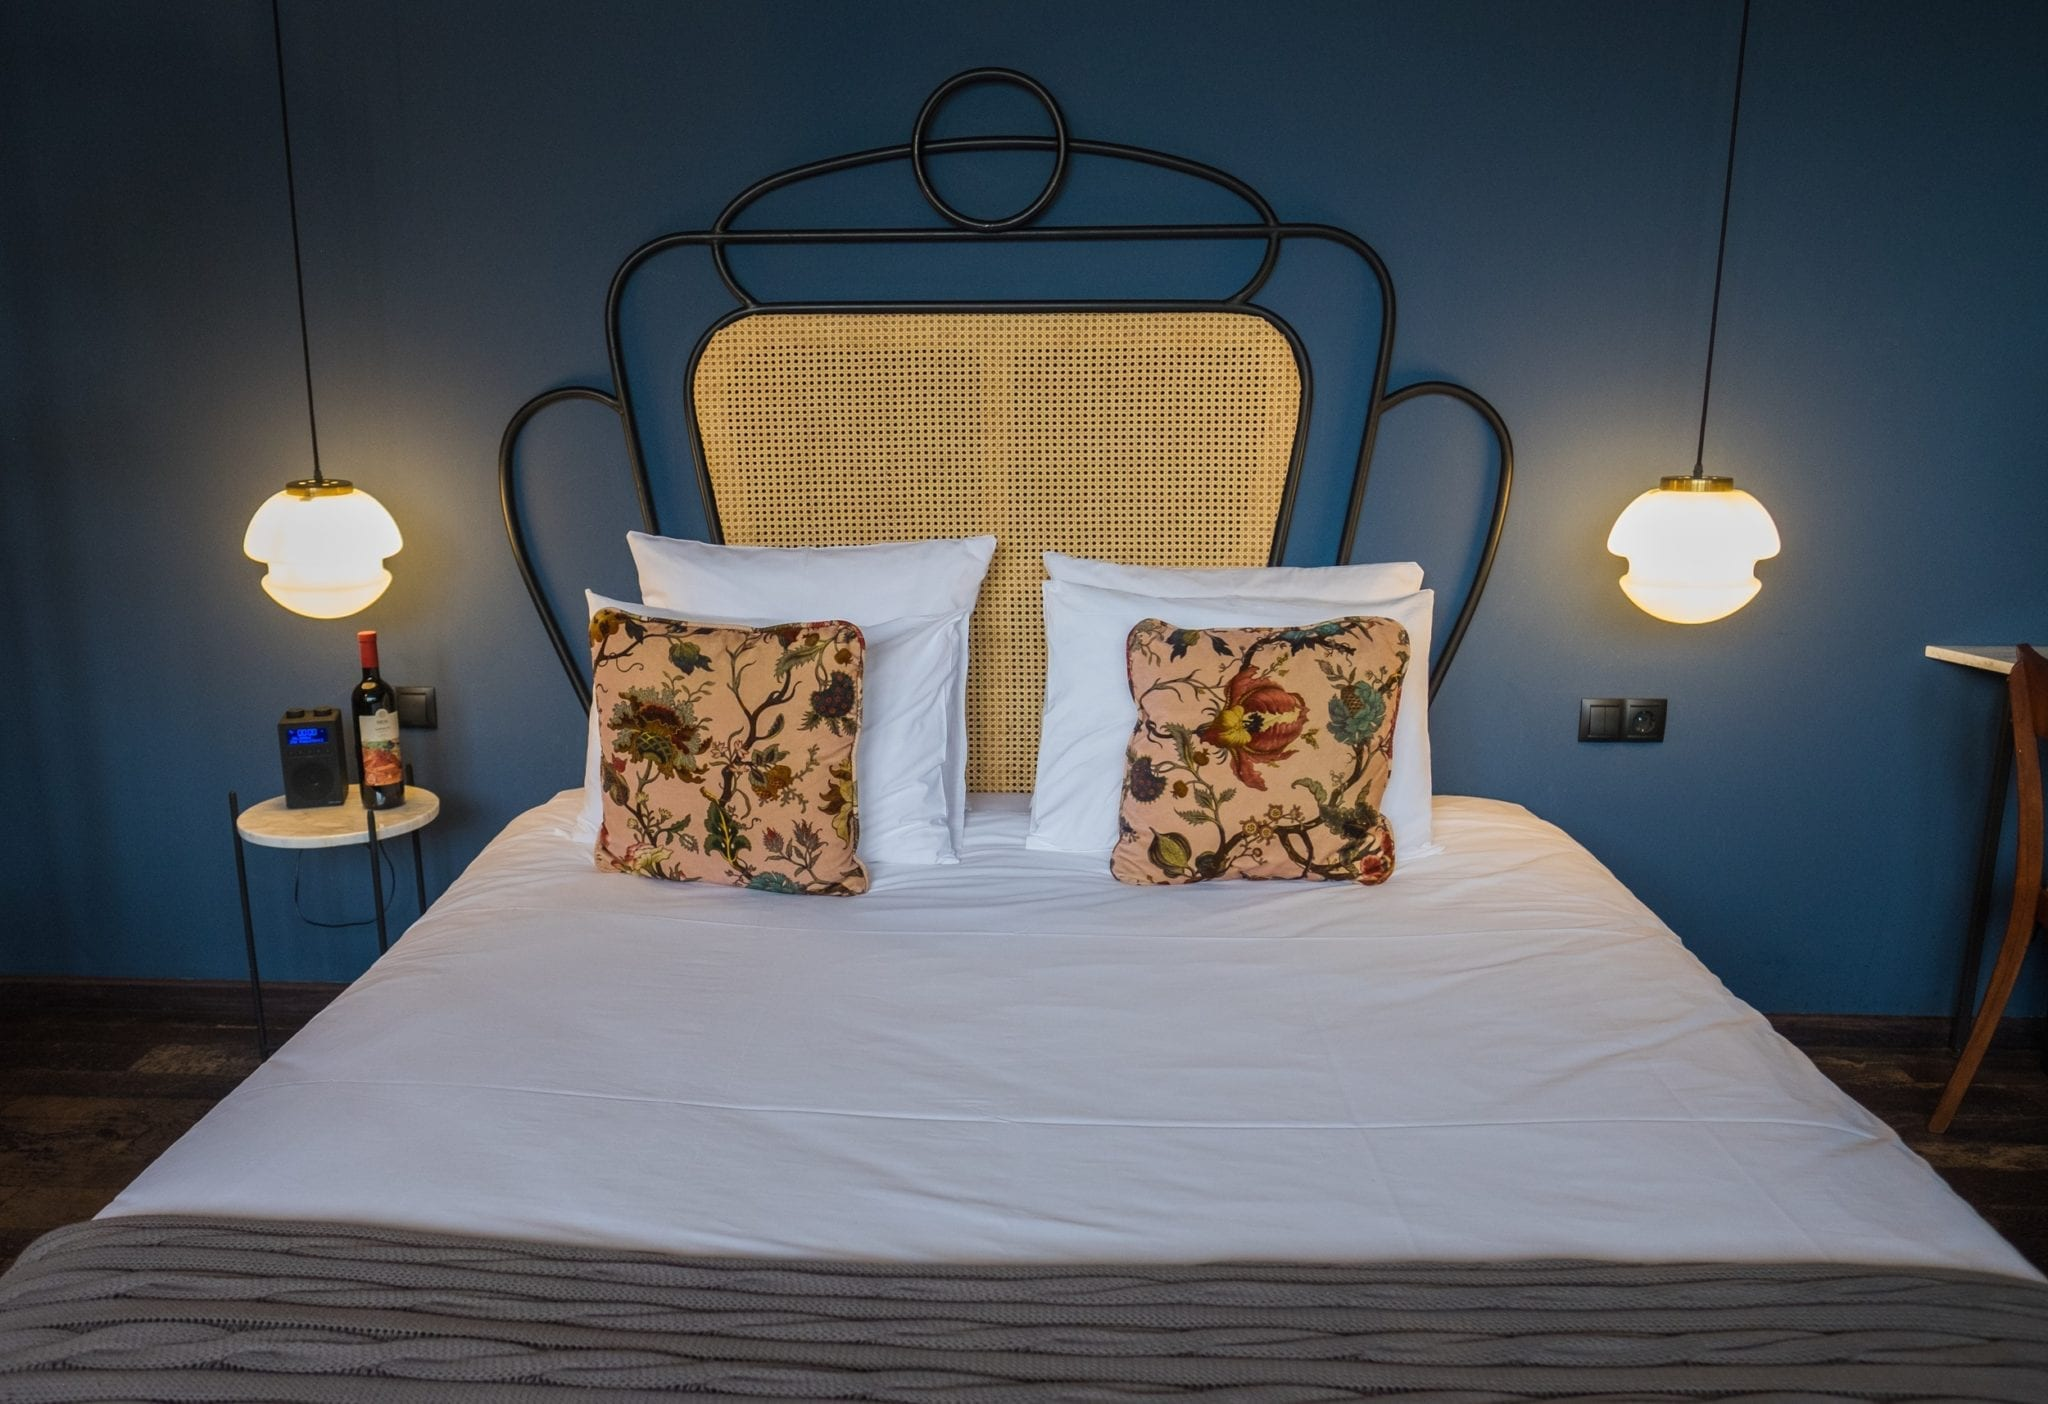 A bed with white sheets, yellow pillows, and a yellow and iron headboard set against a dark blue-green wall with hangings lamps and small modern marble-topped side tables.